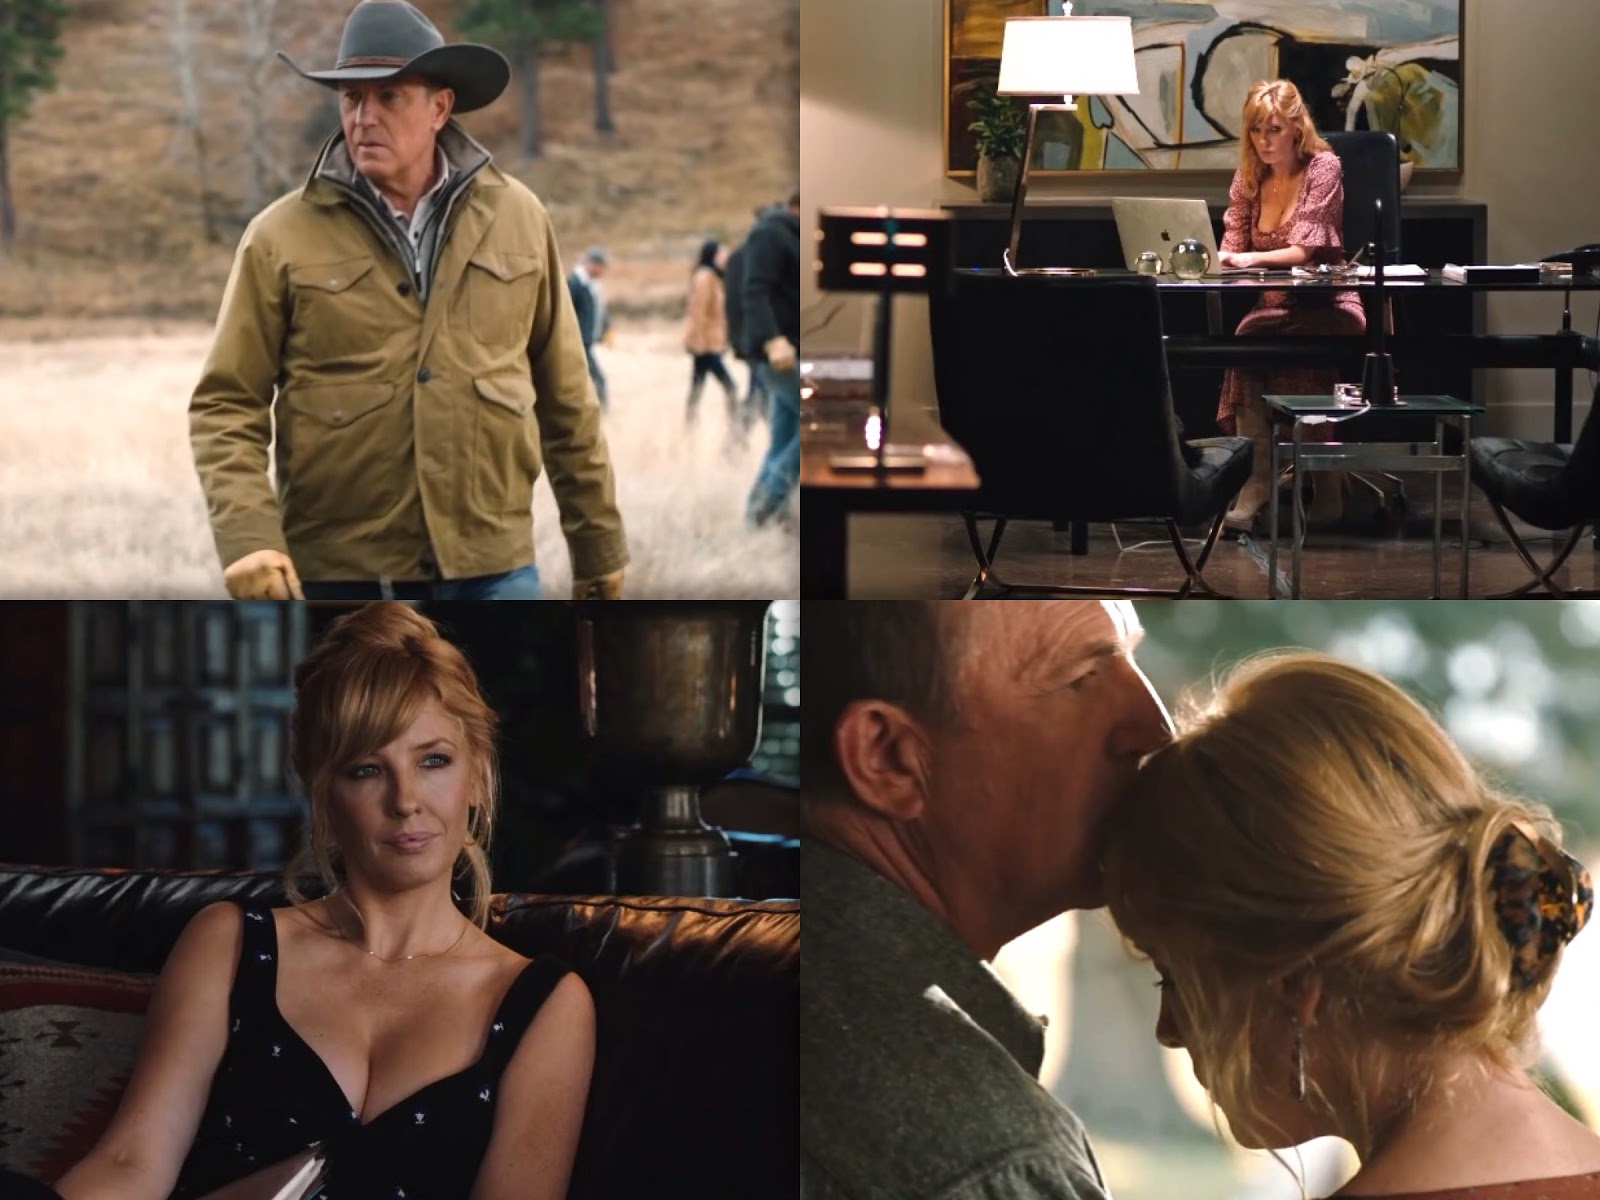 Season 2 of Yellowstone starring Kevin Costner and Kelly